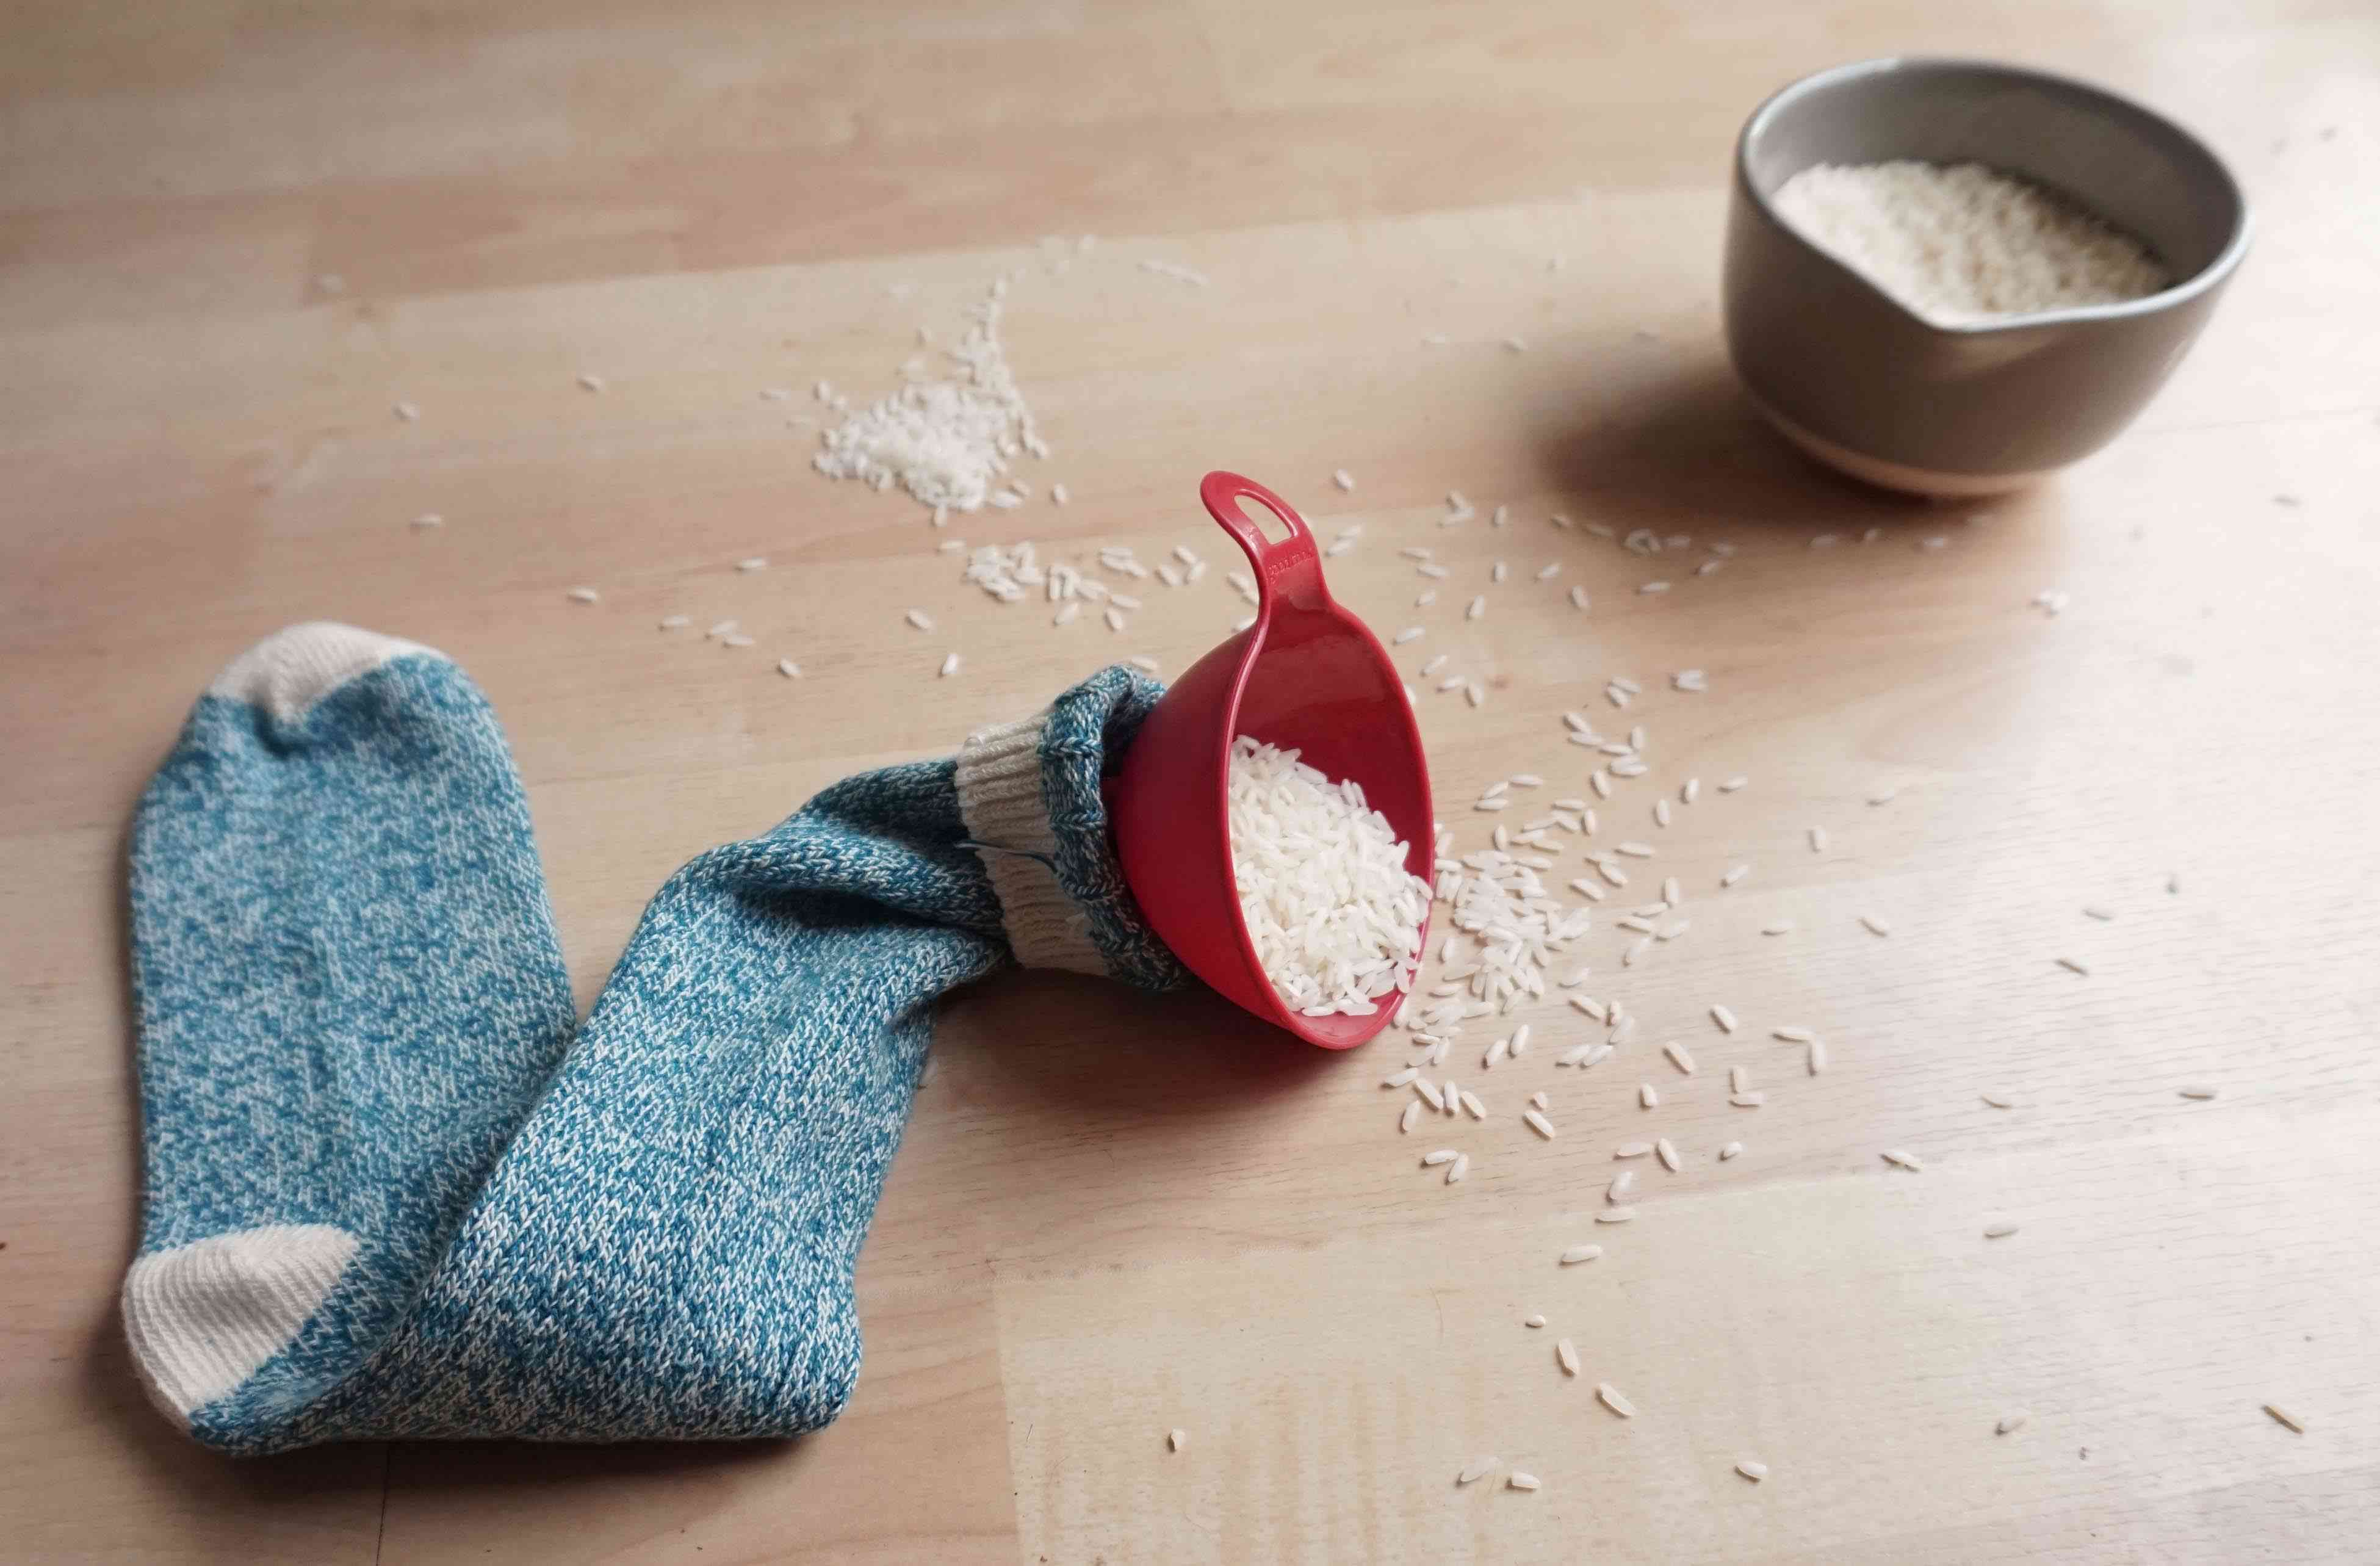 A funnel willed with rice grains inside a blue sock.